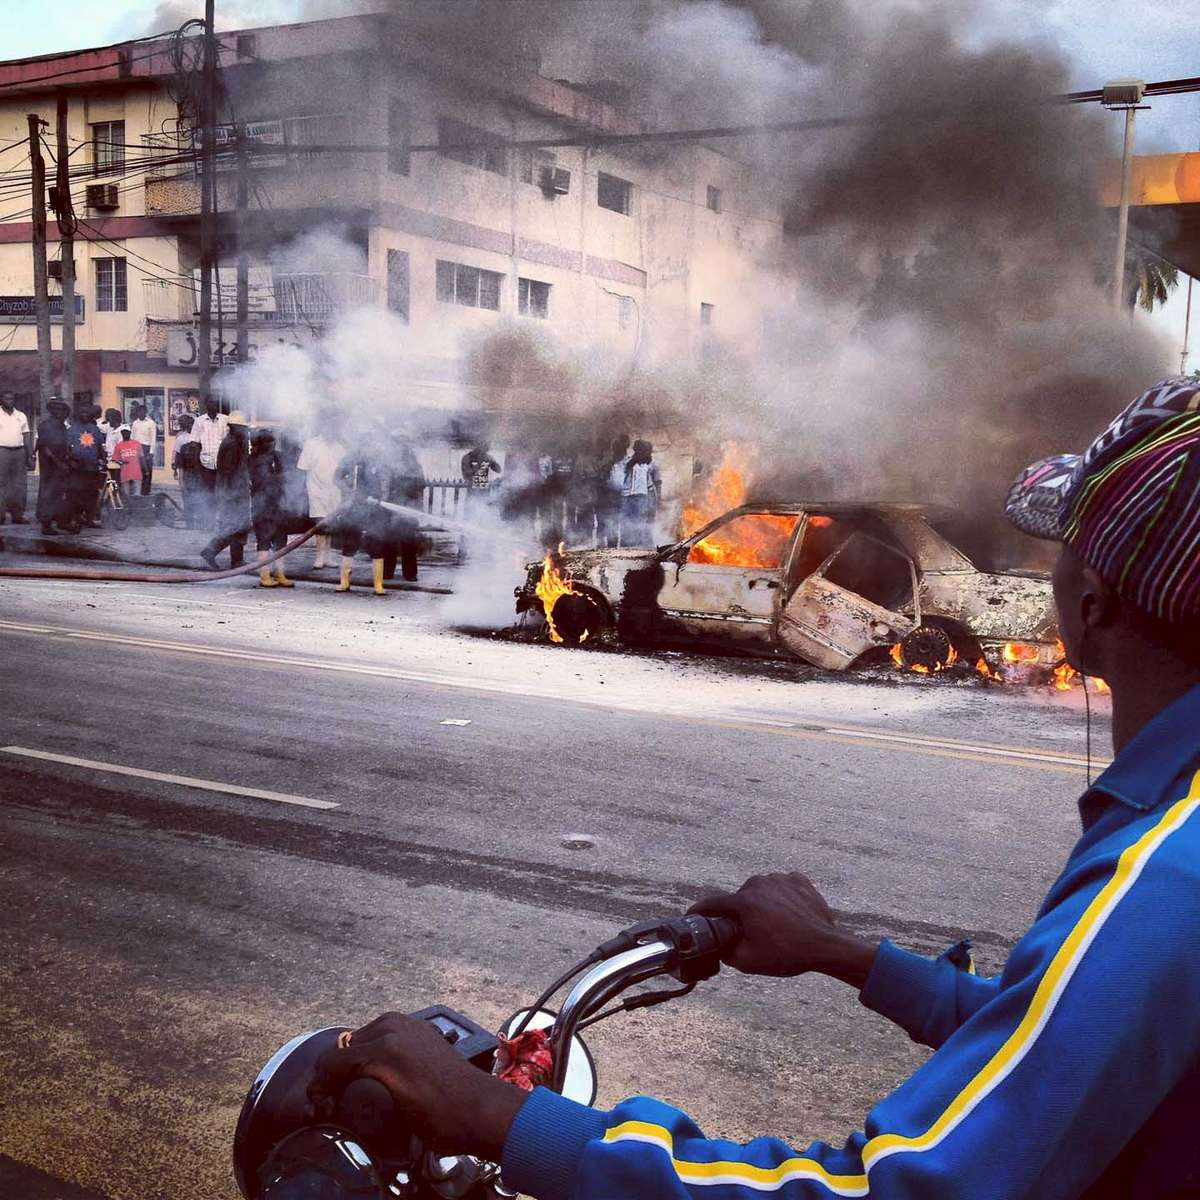 A motorbiker stops to watch a car that caught on fire on Awolowo Road in Lagos, Nigeria. October 2012.